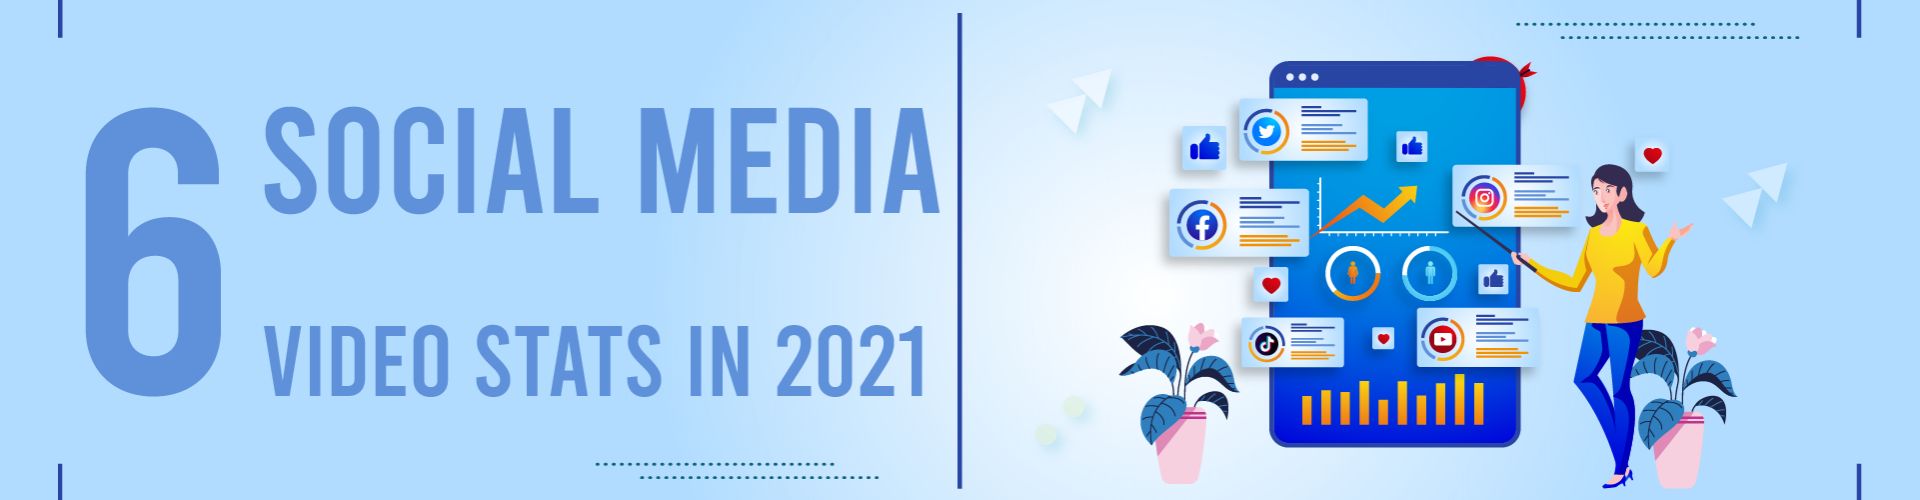 6 Social Media Video Stats to Keep an Eye On in 2021